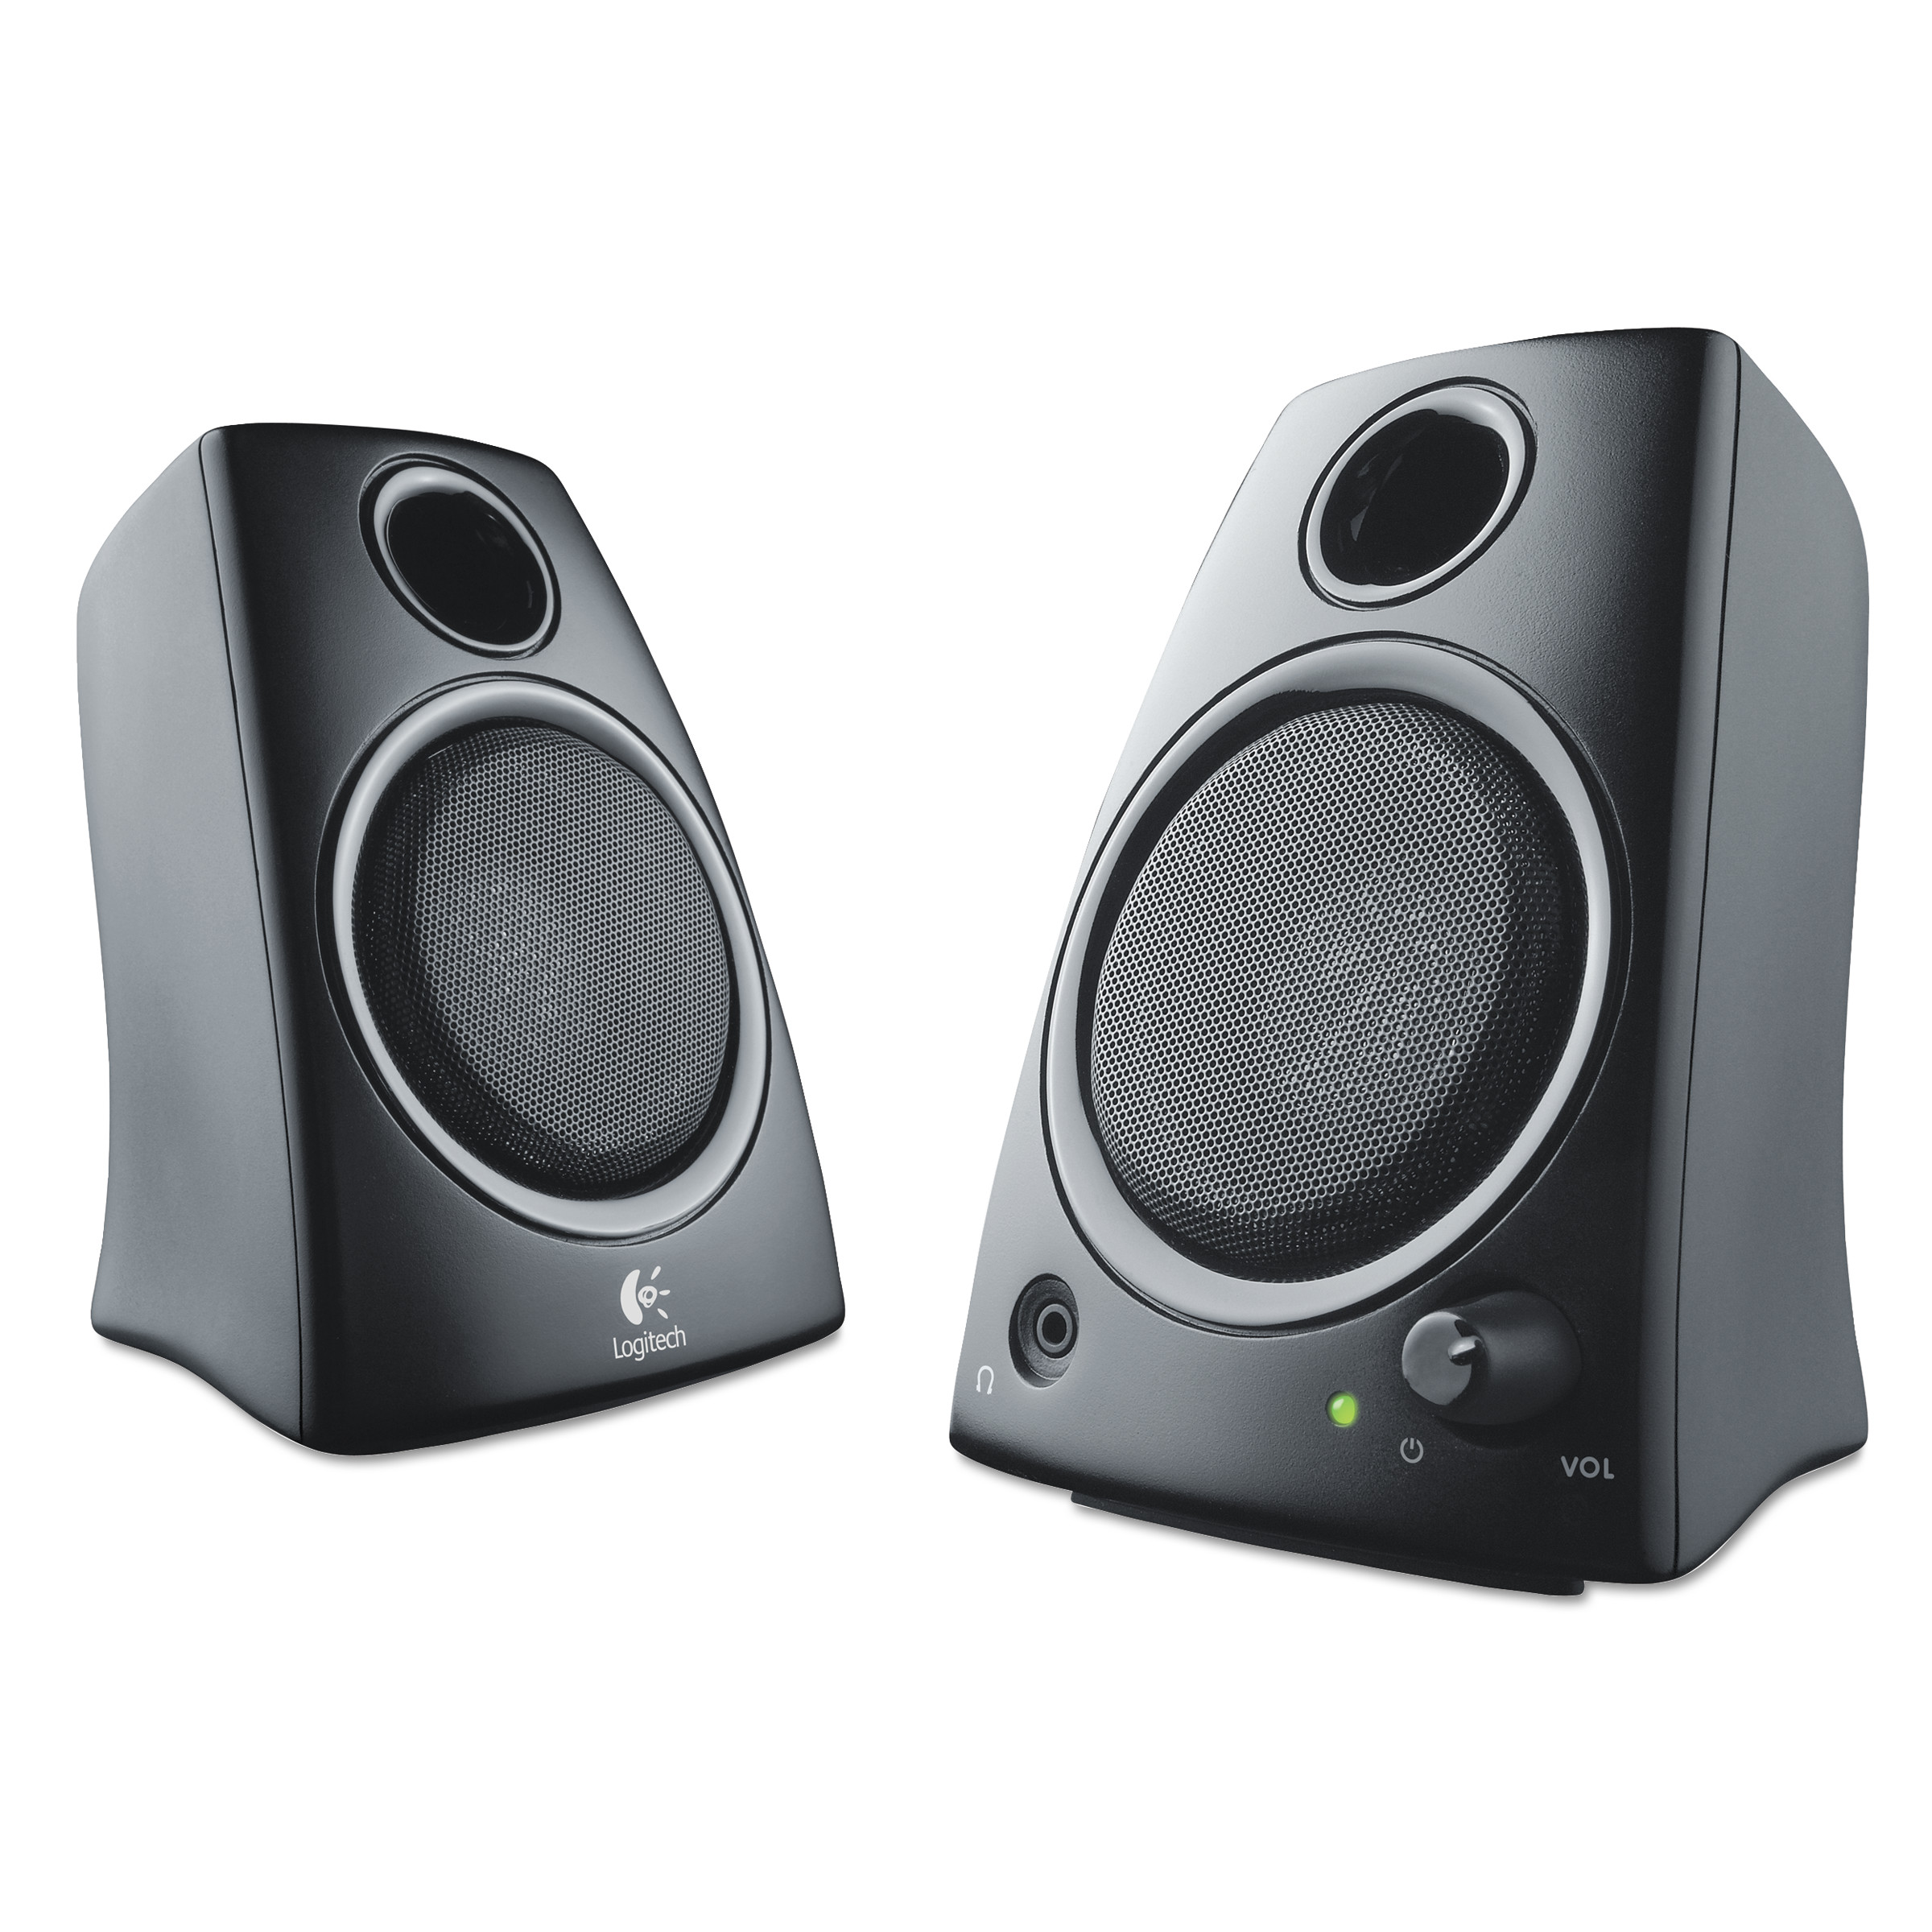 speakers at walmart. logitech z130 compact 2.0 stereo speakers, 3.5mm jack, black speakers at walmart